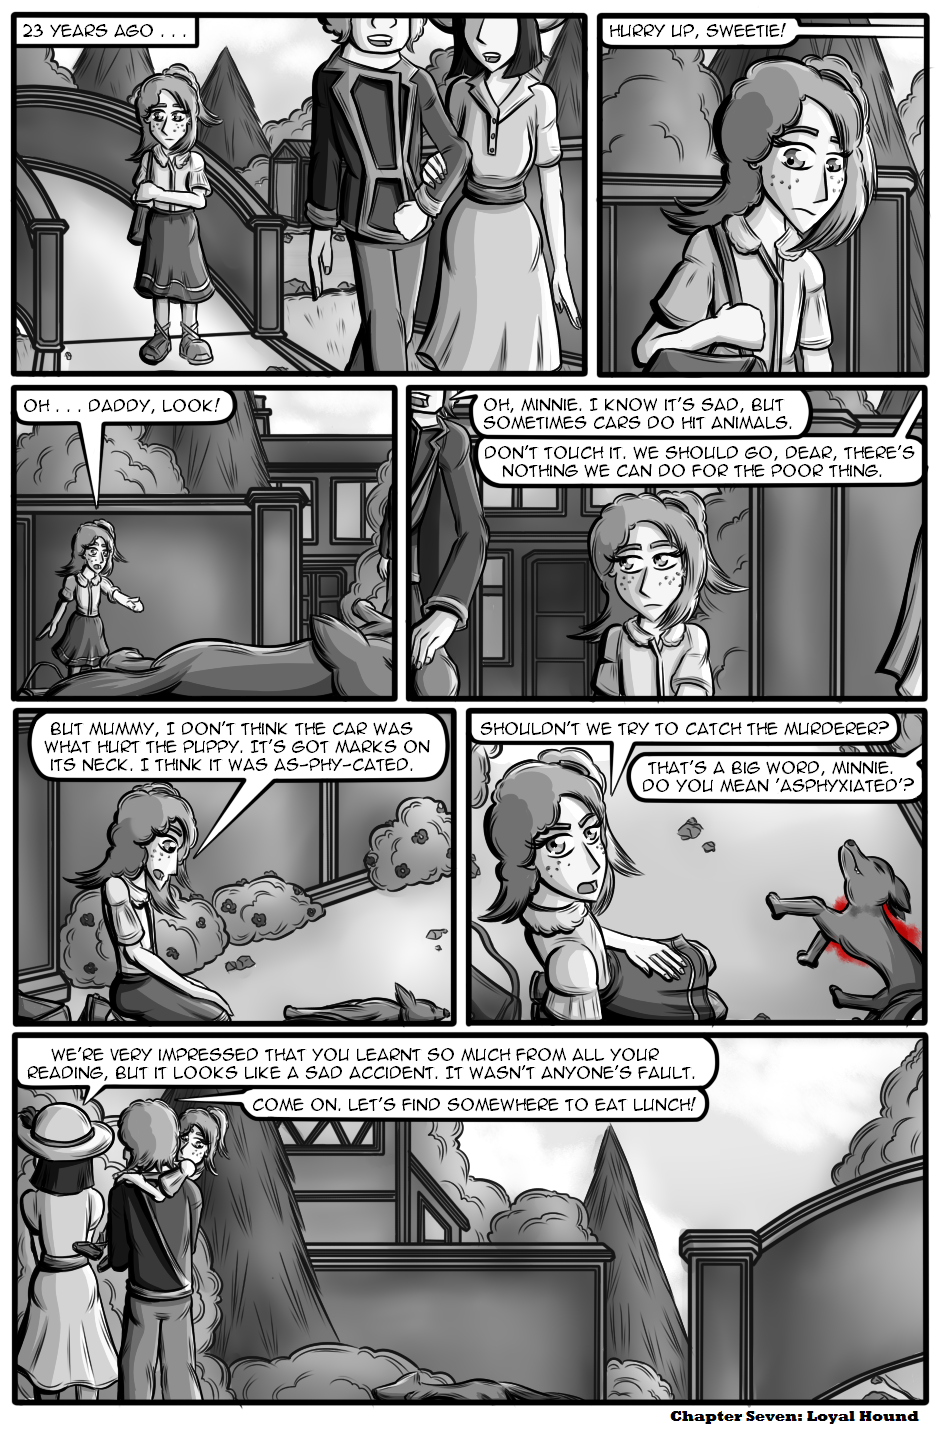 Loyal Hound - Part 1